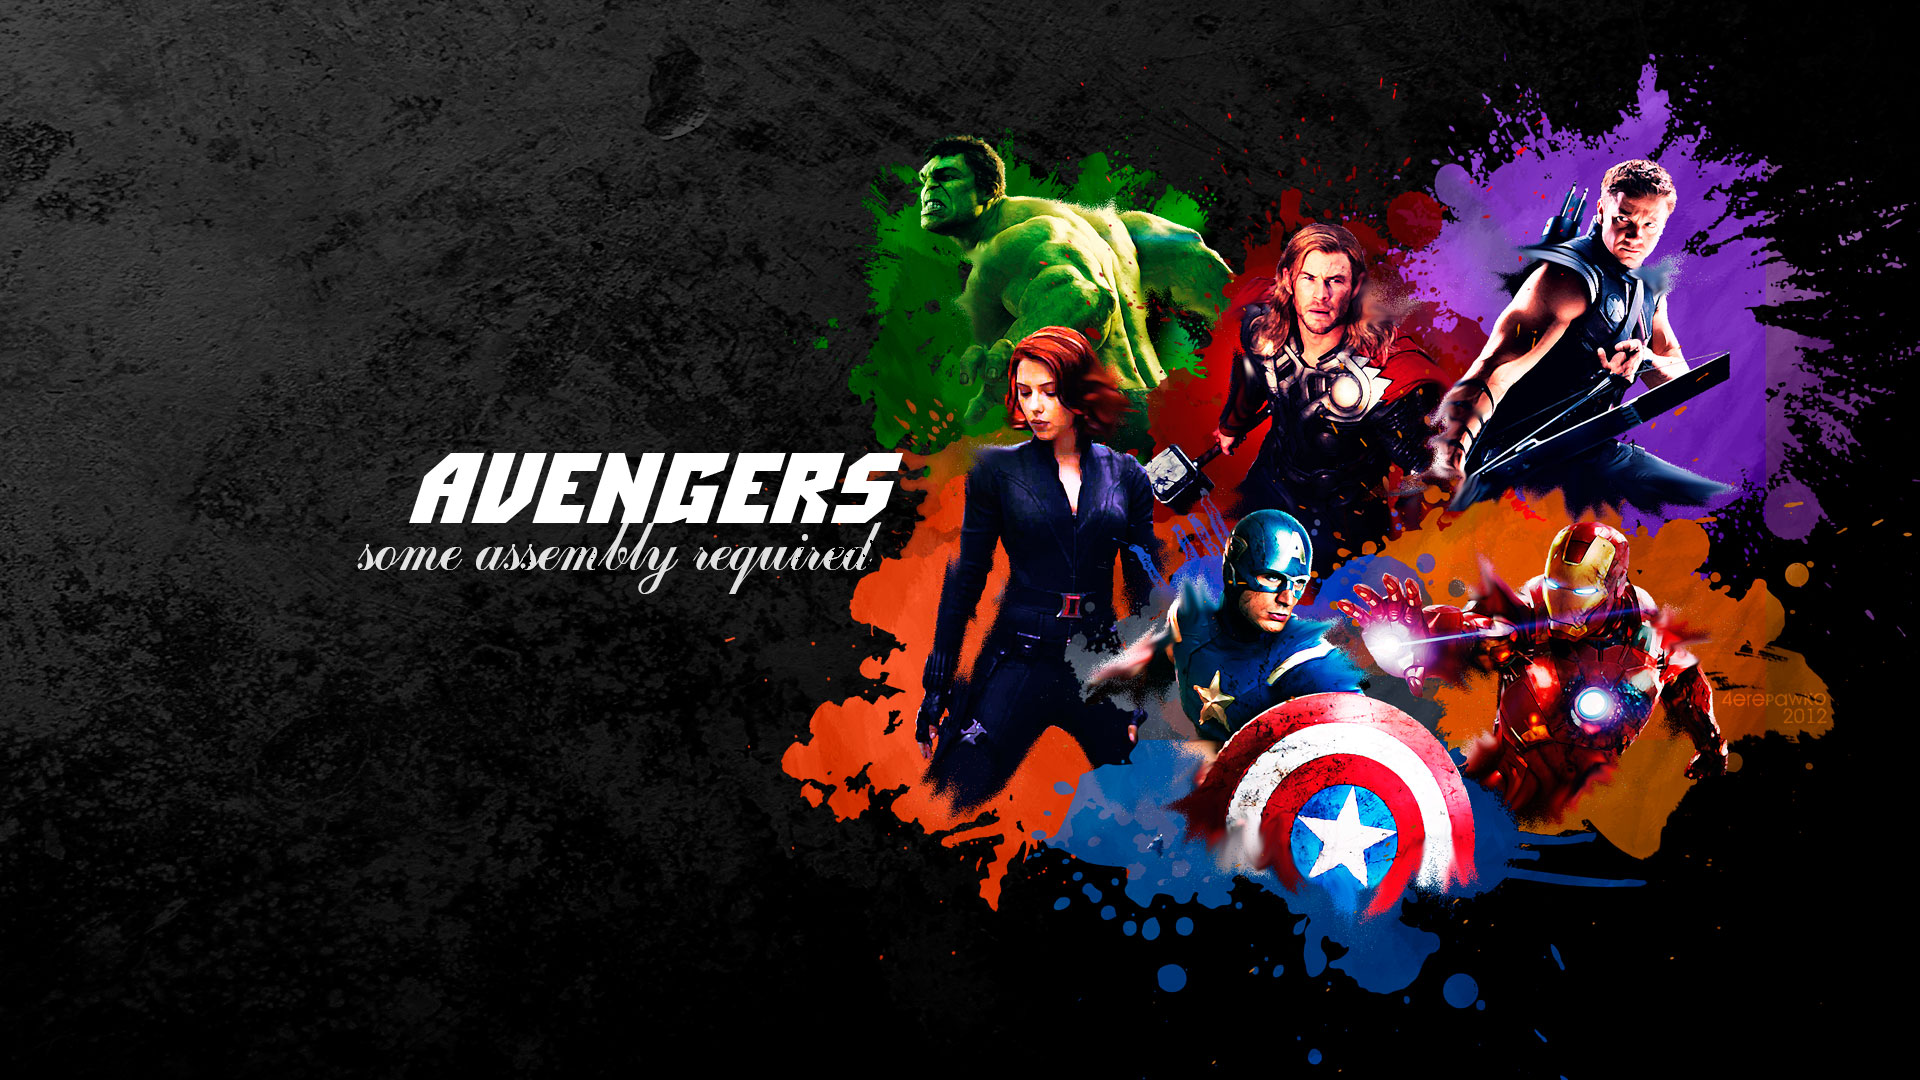 The Avengers Wallpapers For Desktop 1920x1080 Movie Backgrounds 1920x1080